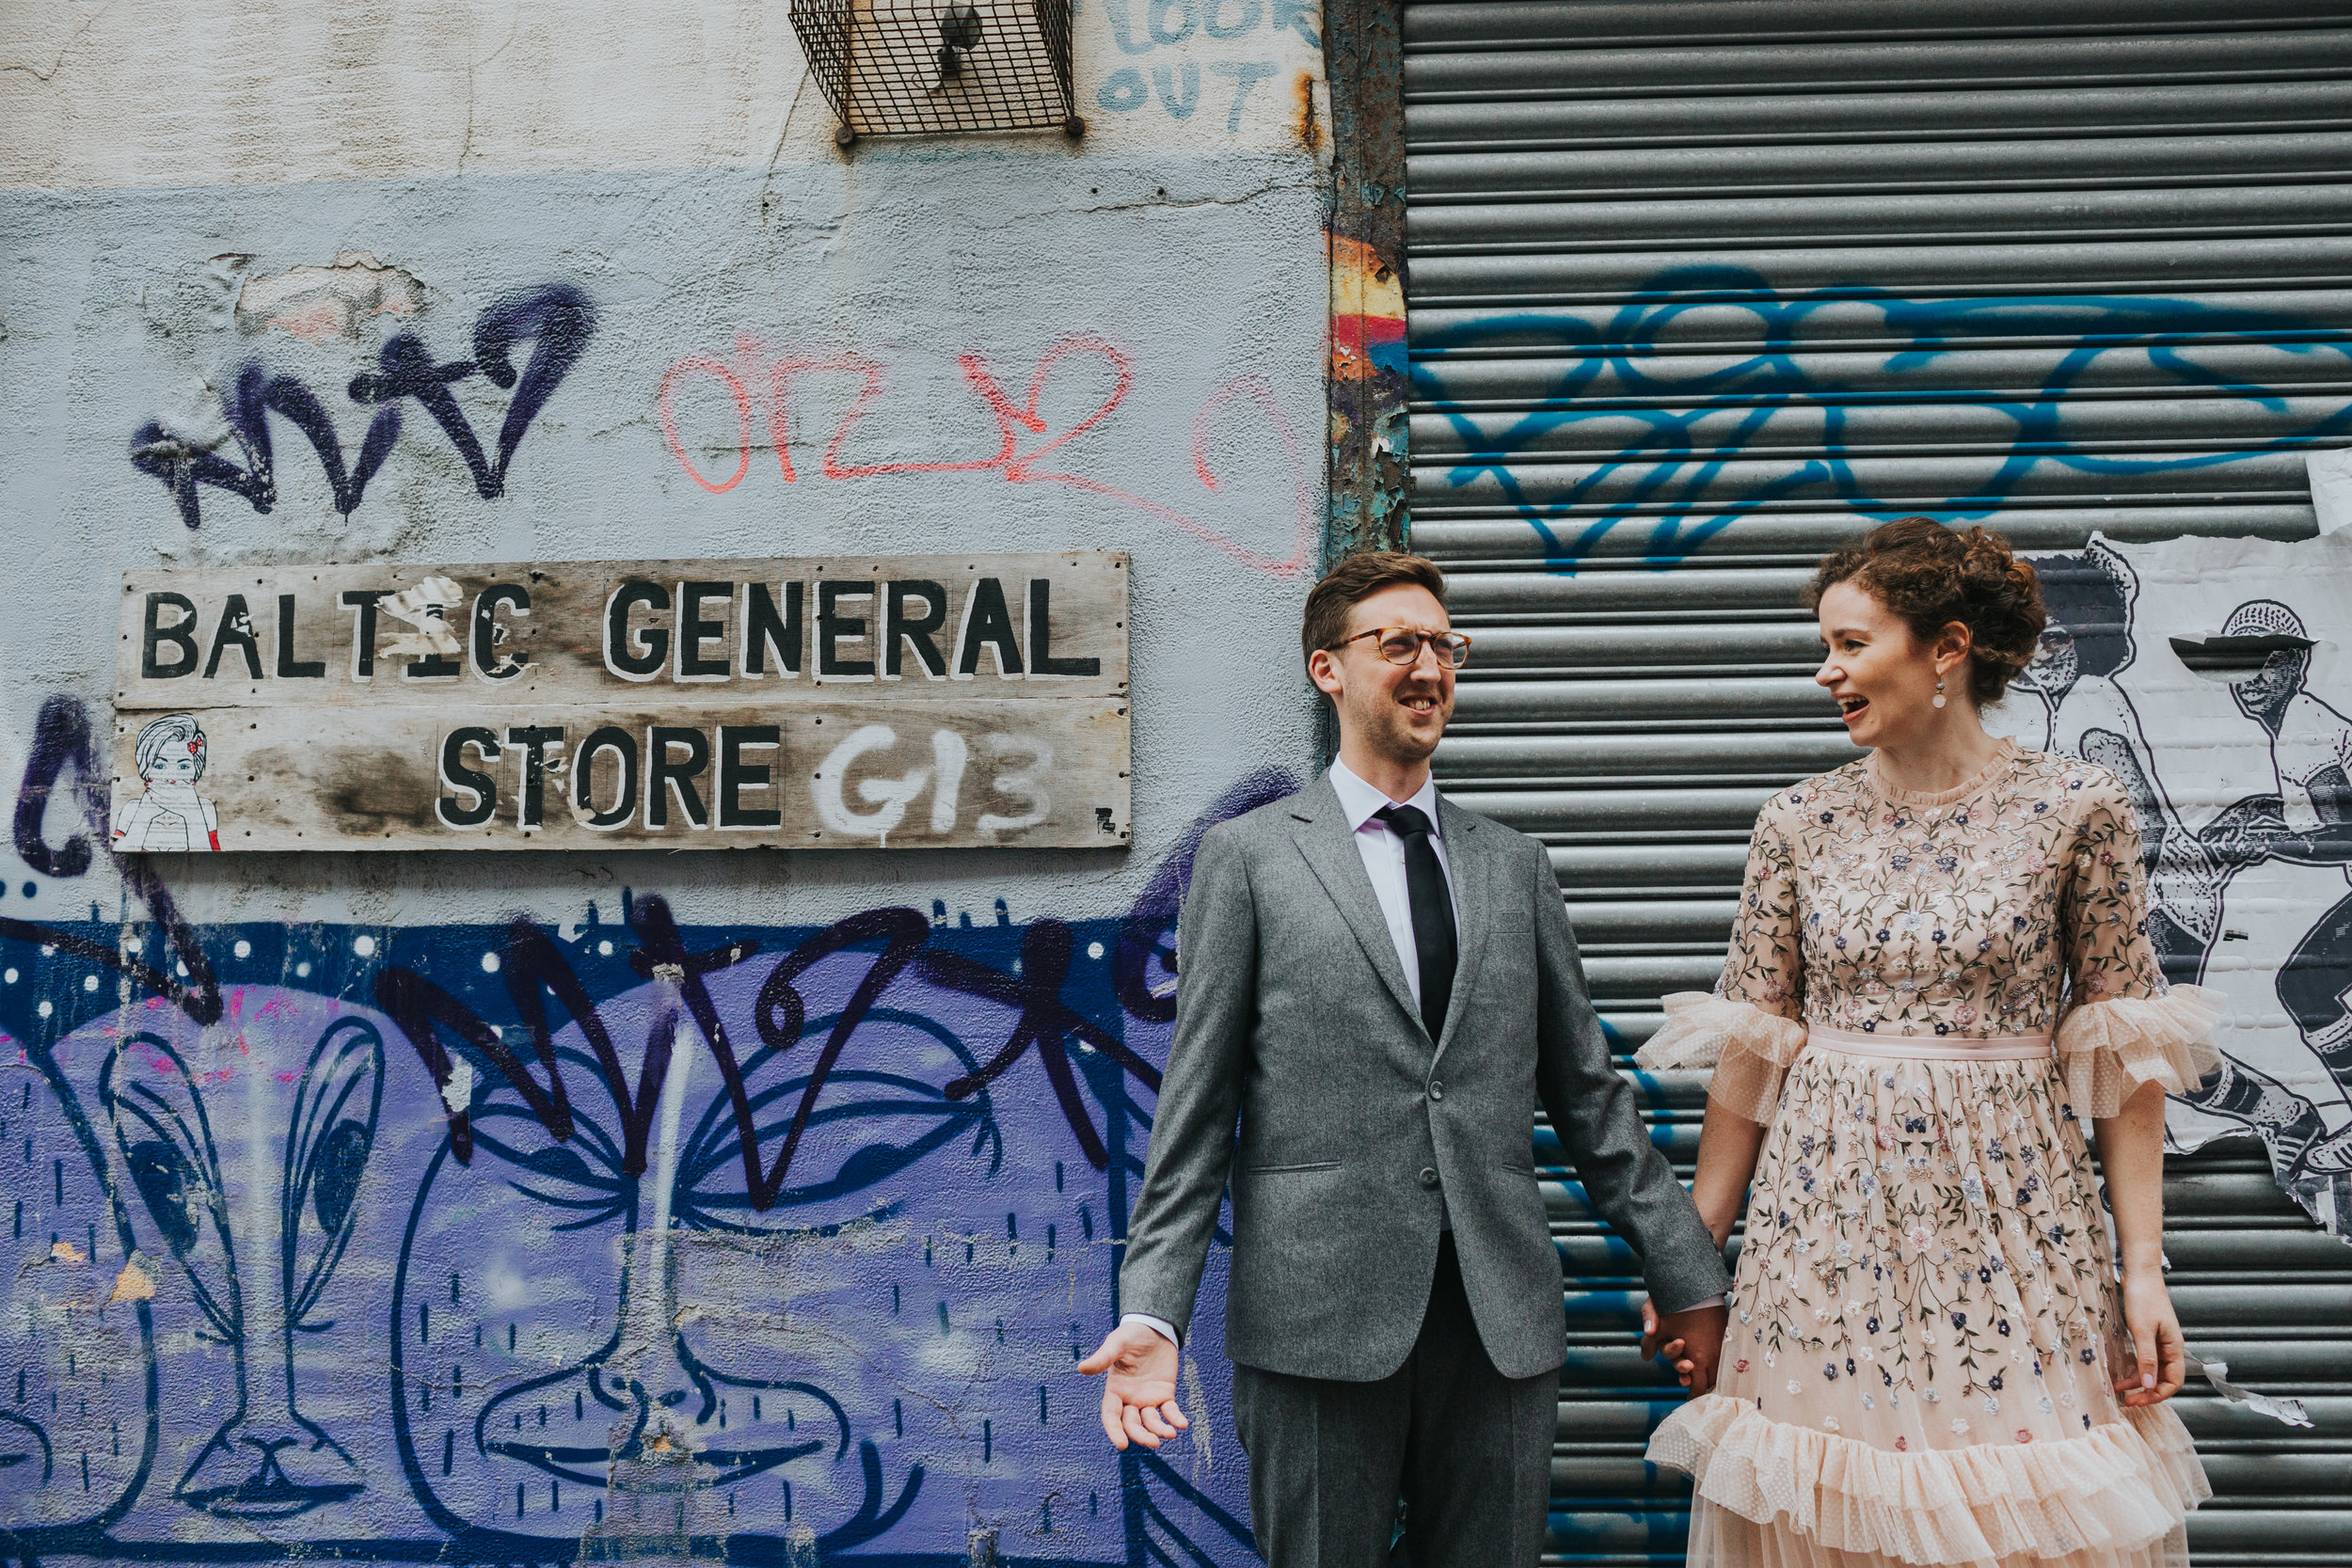 Bride and Groom laugh together besides Baltic General Store Sign.